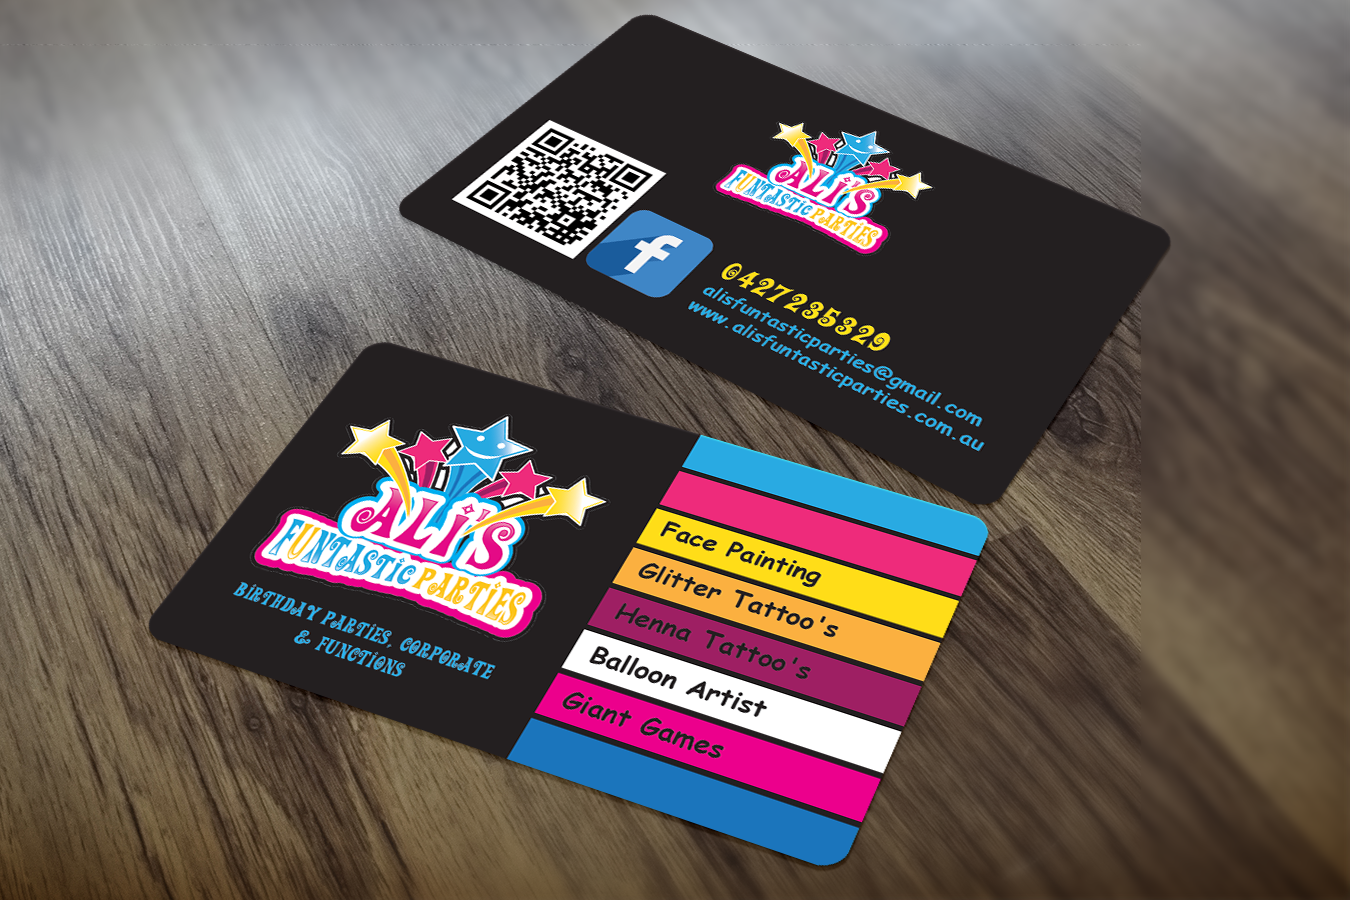 Playful colorful business card design for alison wightwick by business card design by sajin for childrens paty business stars face painting design 7642965 magicingreecefo Gallery